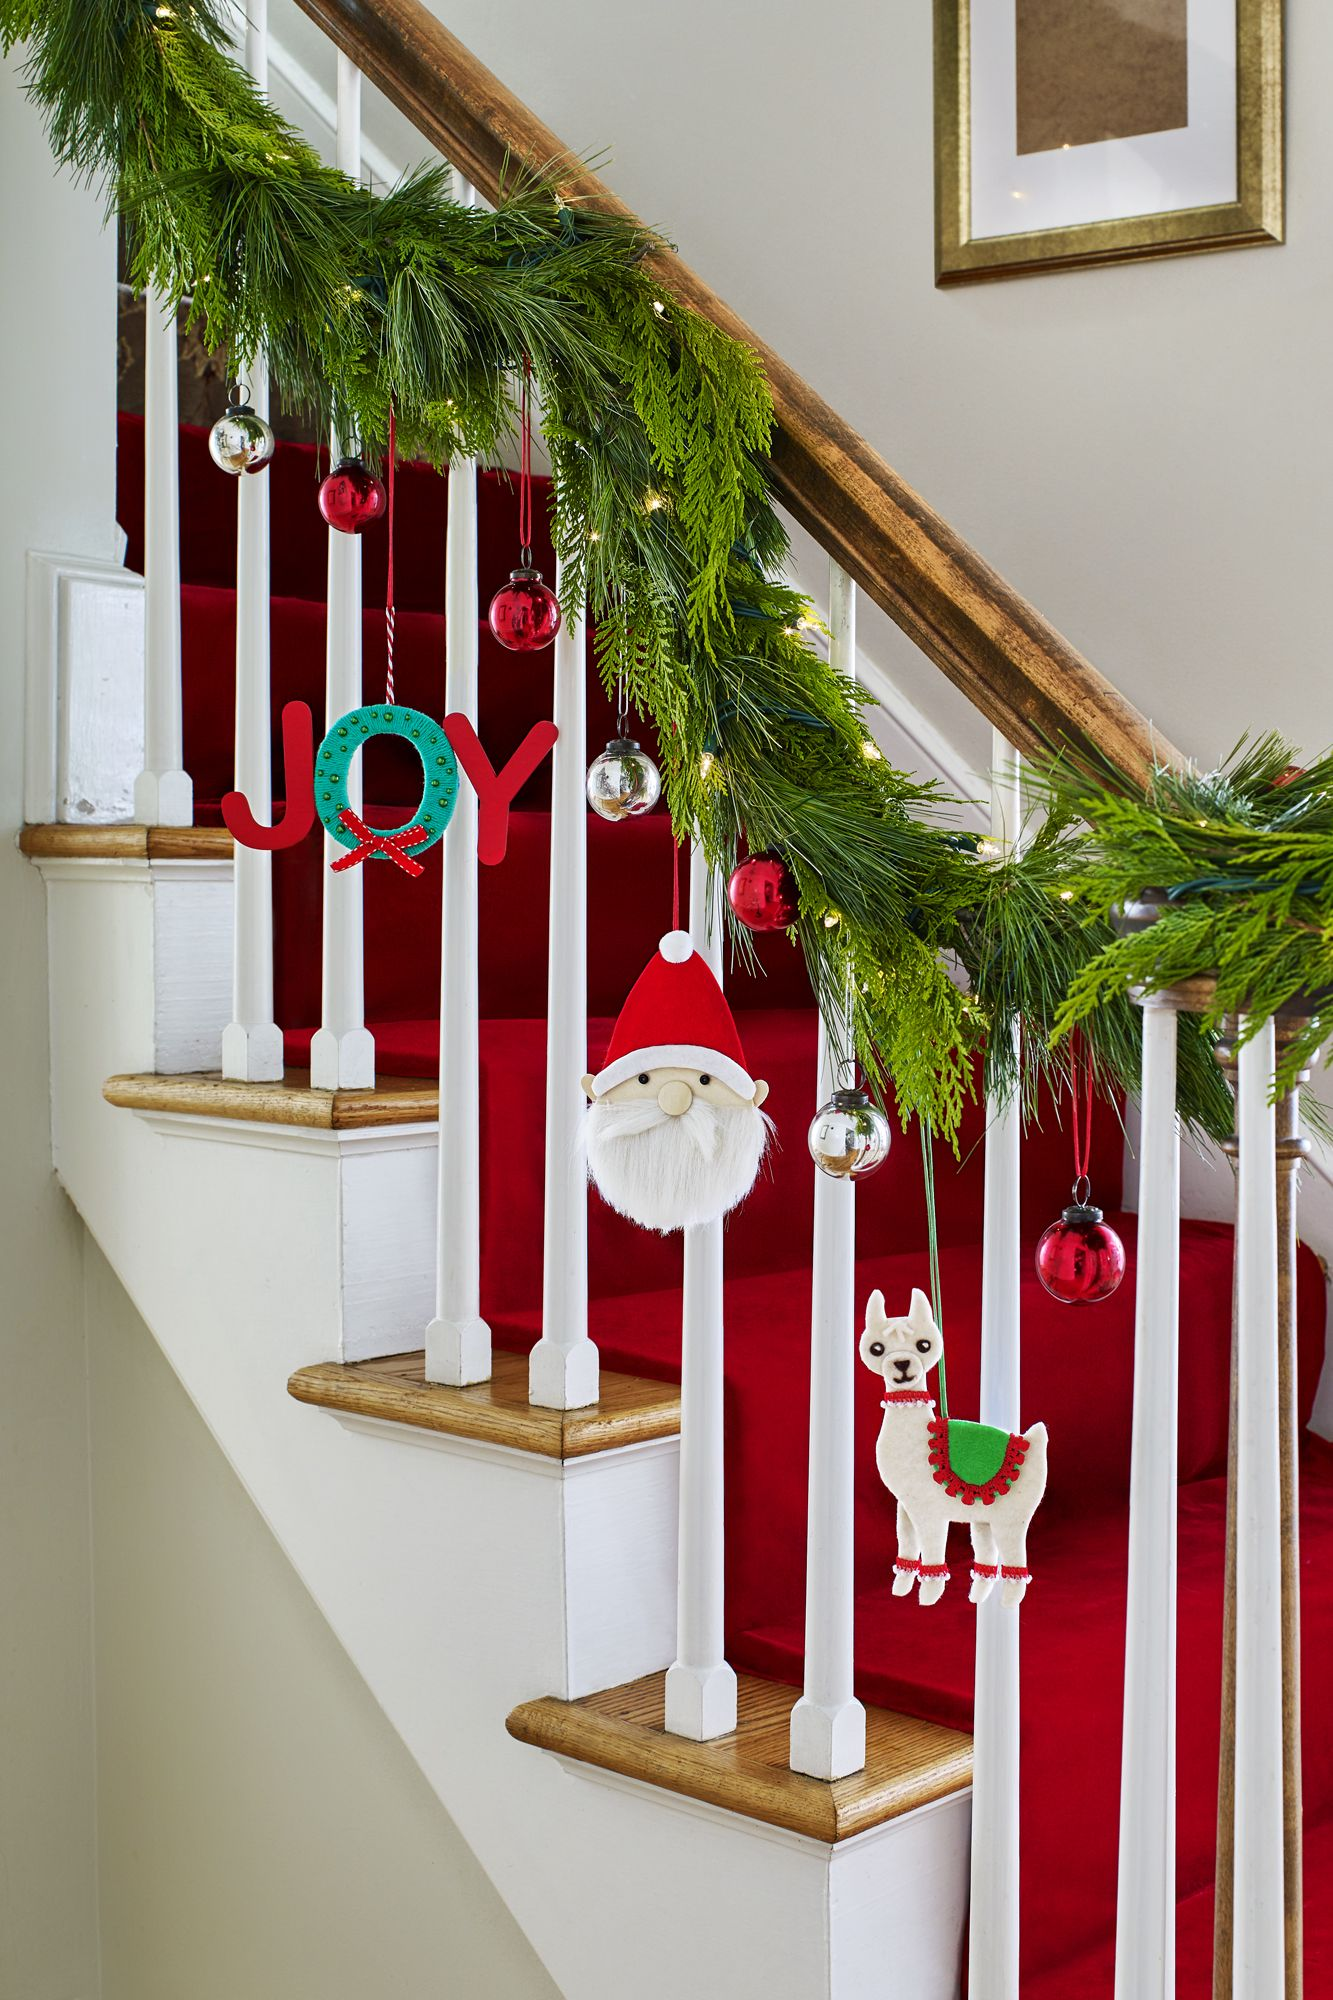 30 Easy DIY Christmas Decorations , Homemade Holiday Decorations